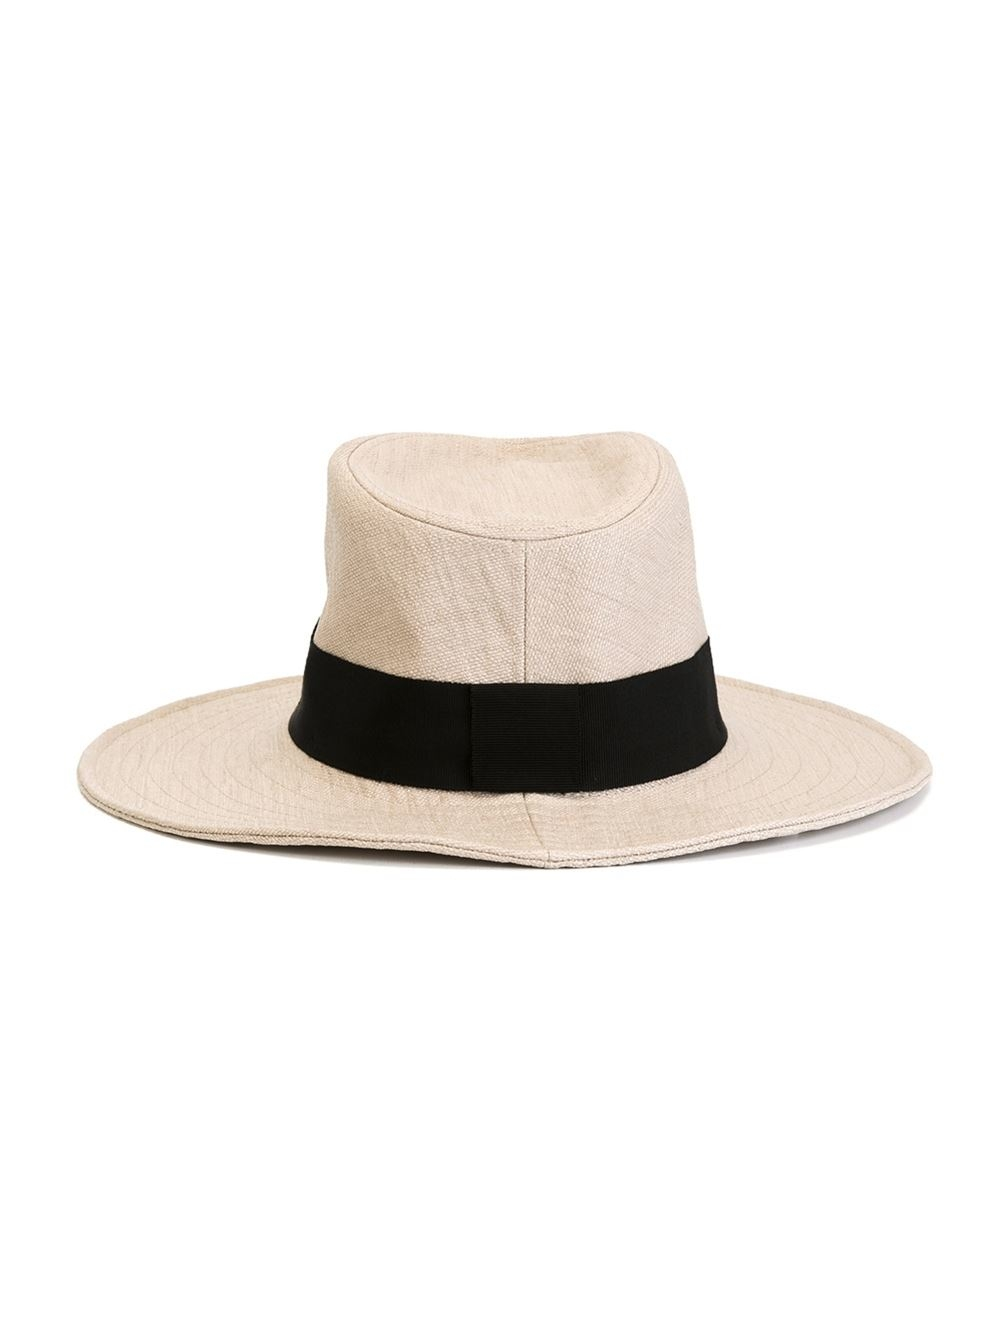 Maison michel charles straw hat in black lyst for Maison michel